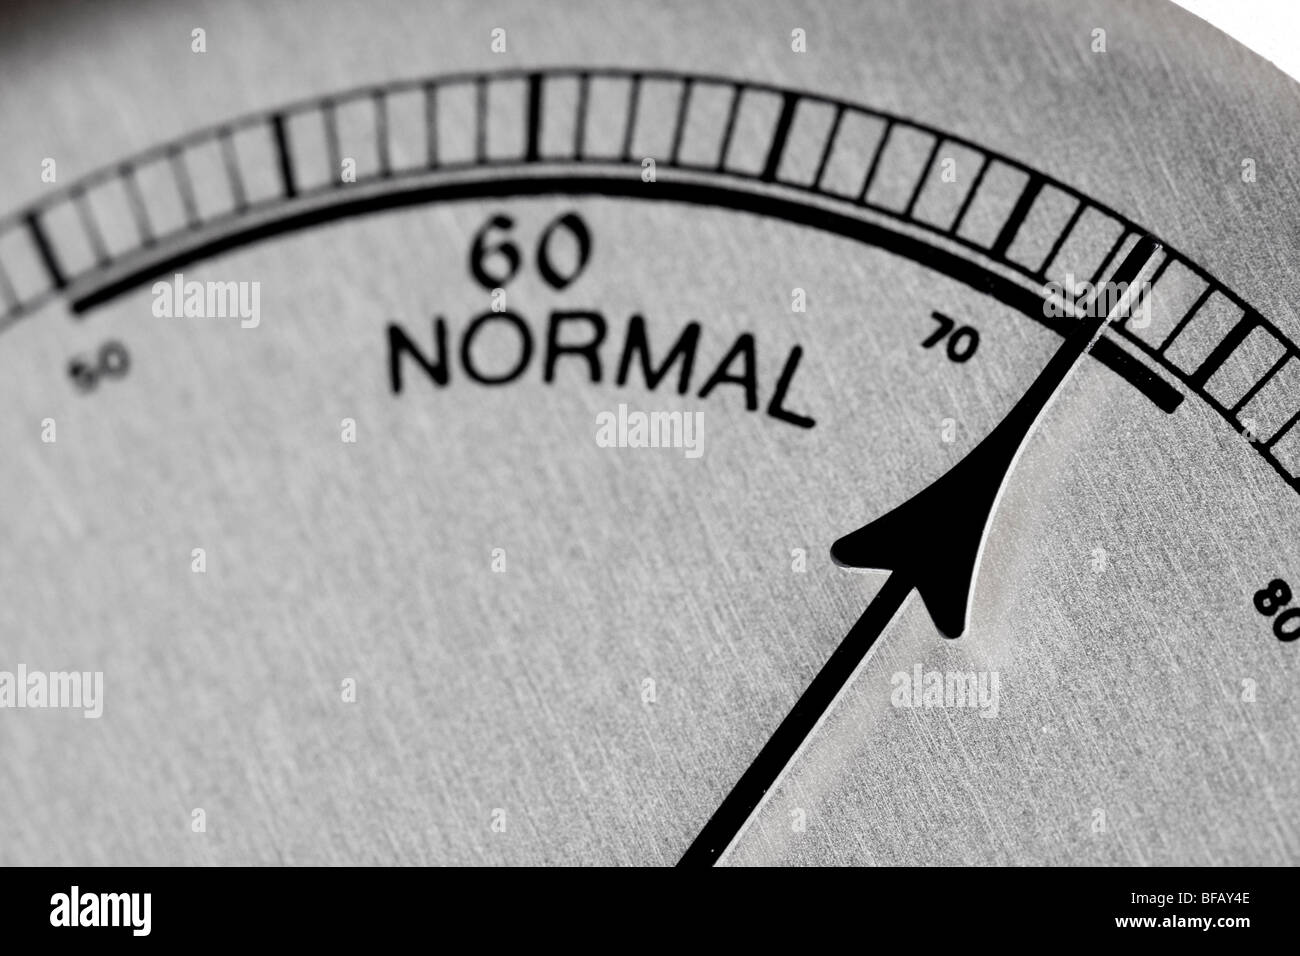 comfort zone - vintage humidity meter( hygrometer) close-up - Stock Image